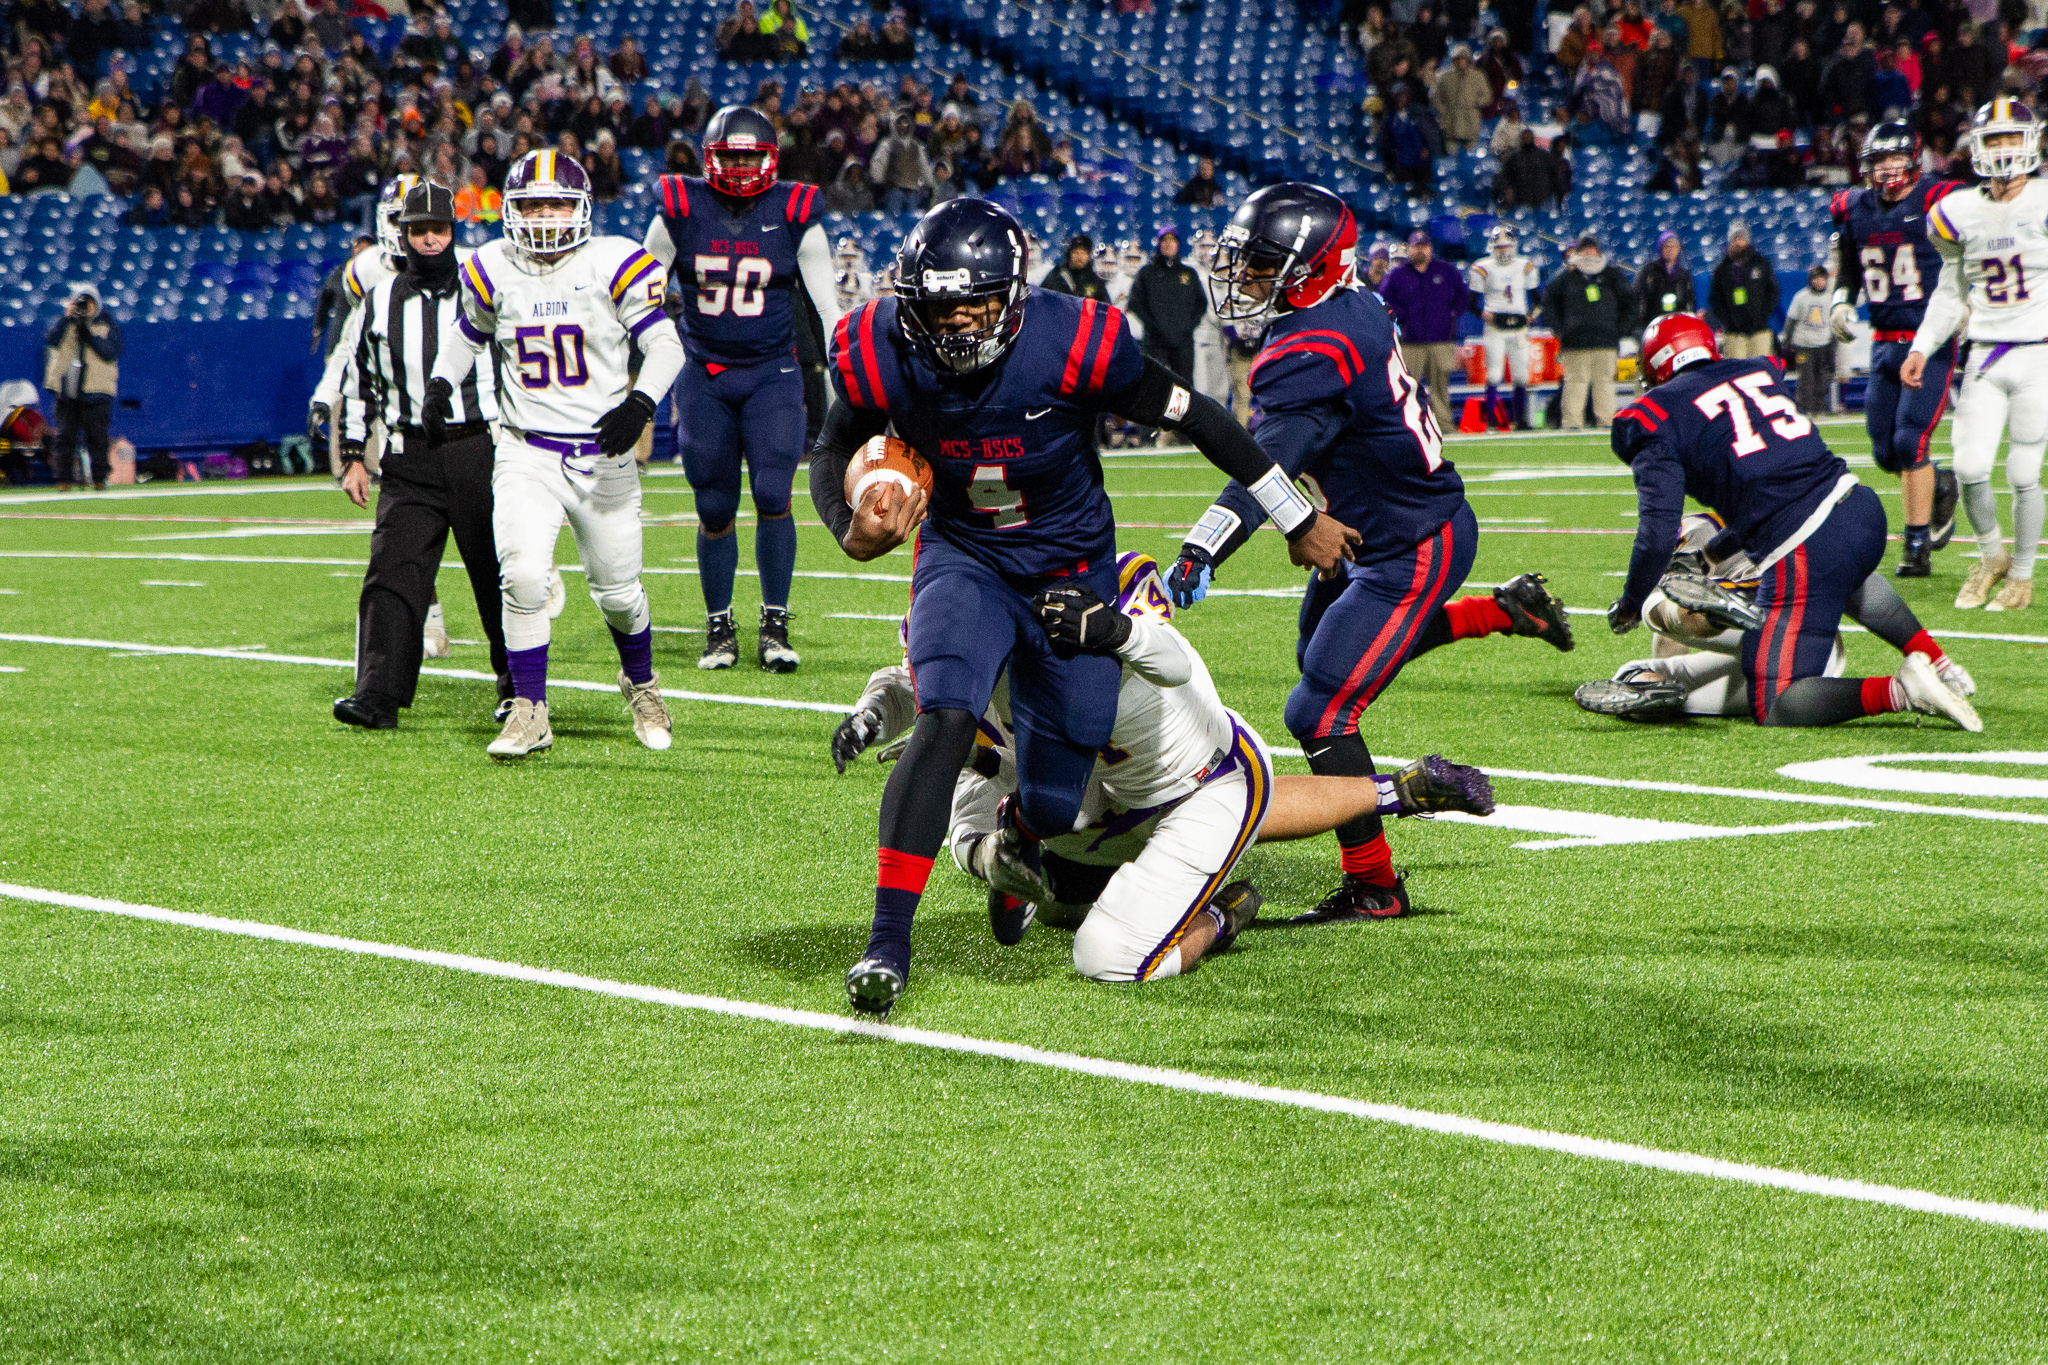 Lancaster Wins Fourth Straight Championship, Maritime Wins First Title